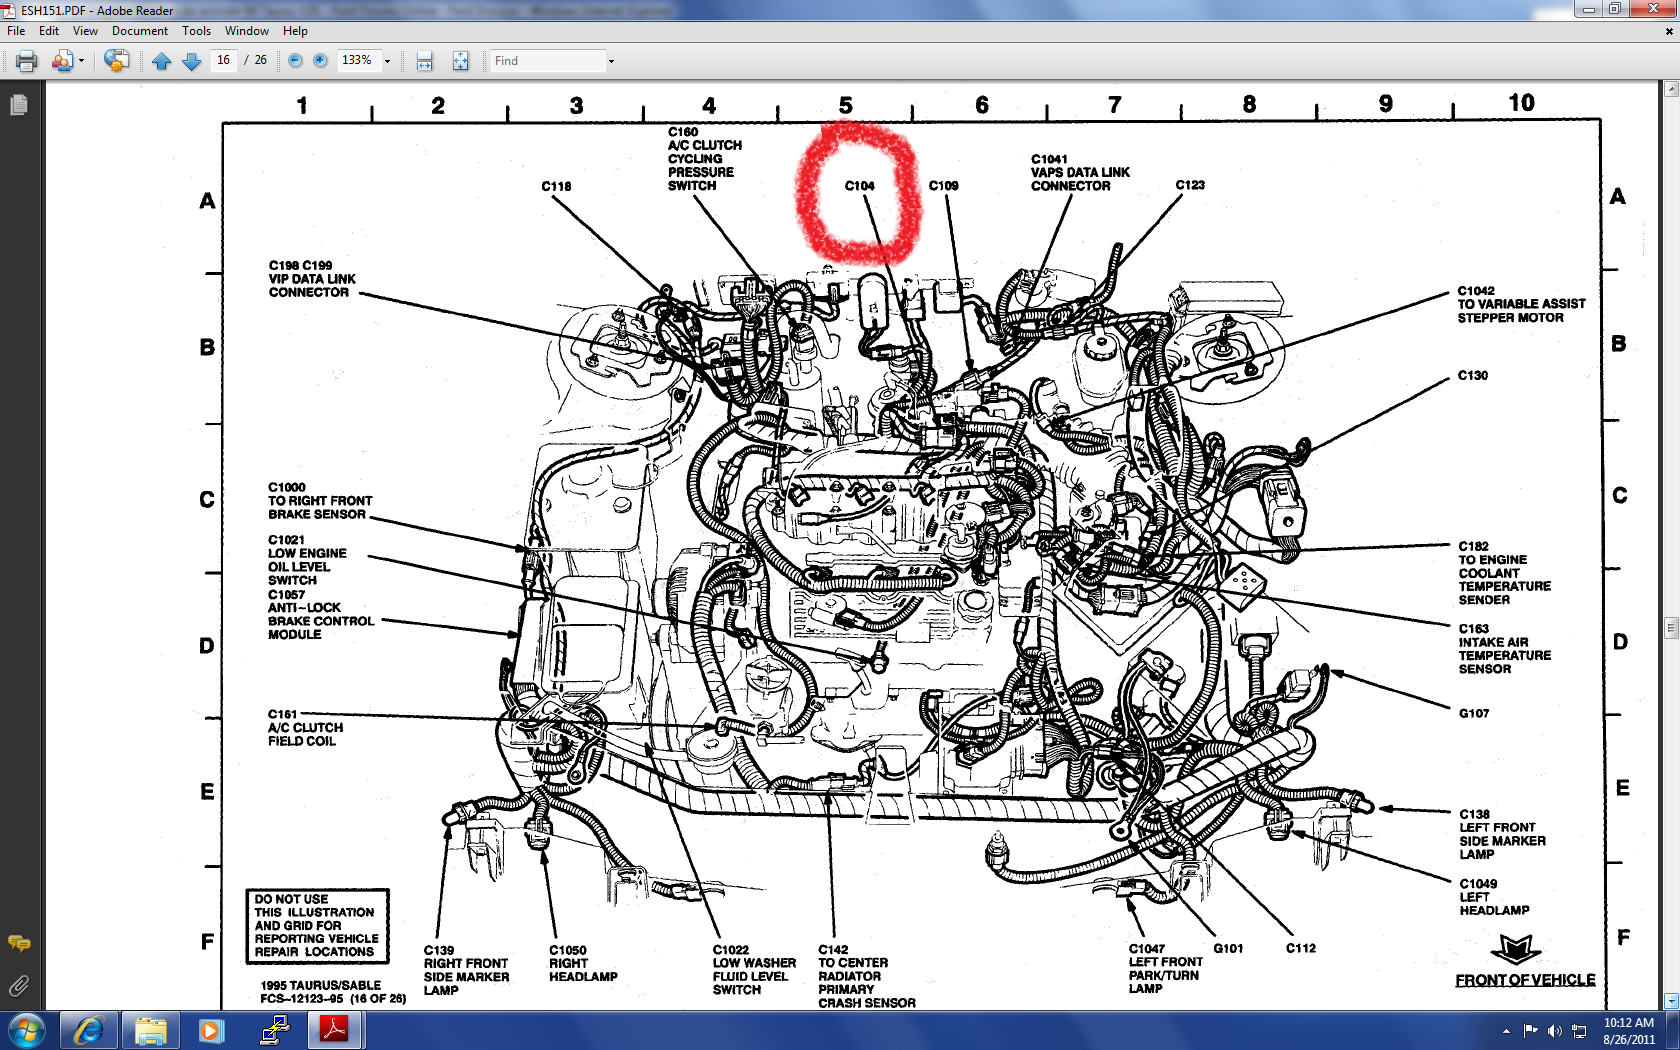 2011 Ford Fusion Wiring Diagram Temp Sensor - Tools •